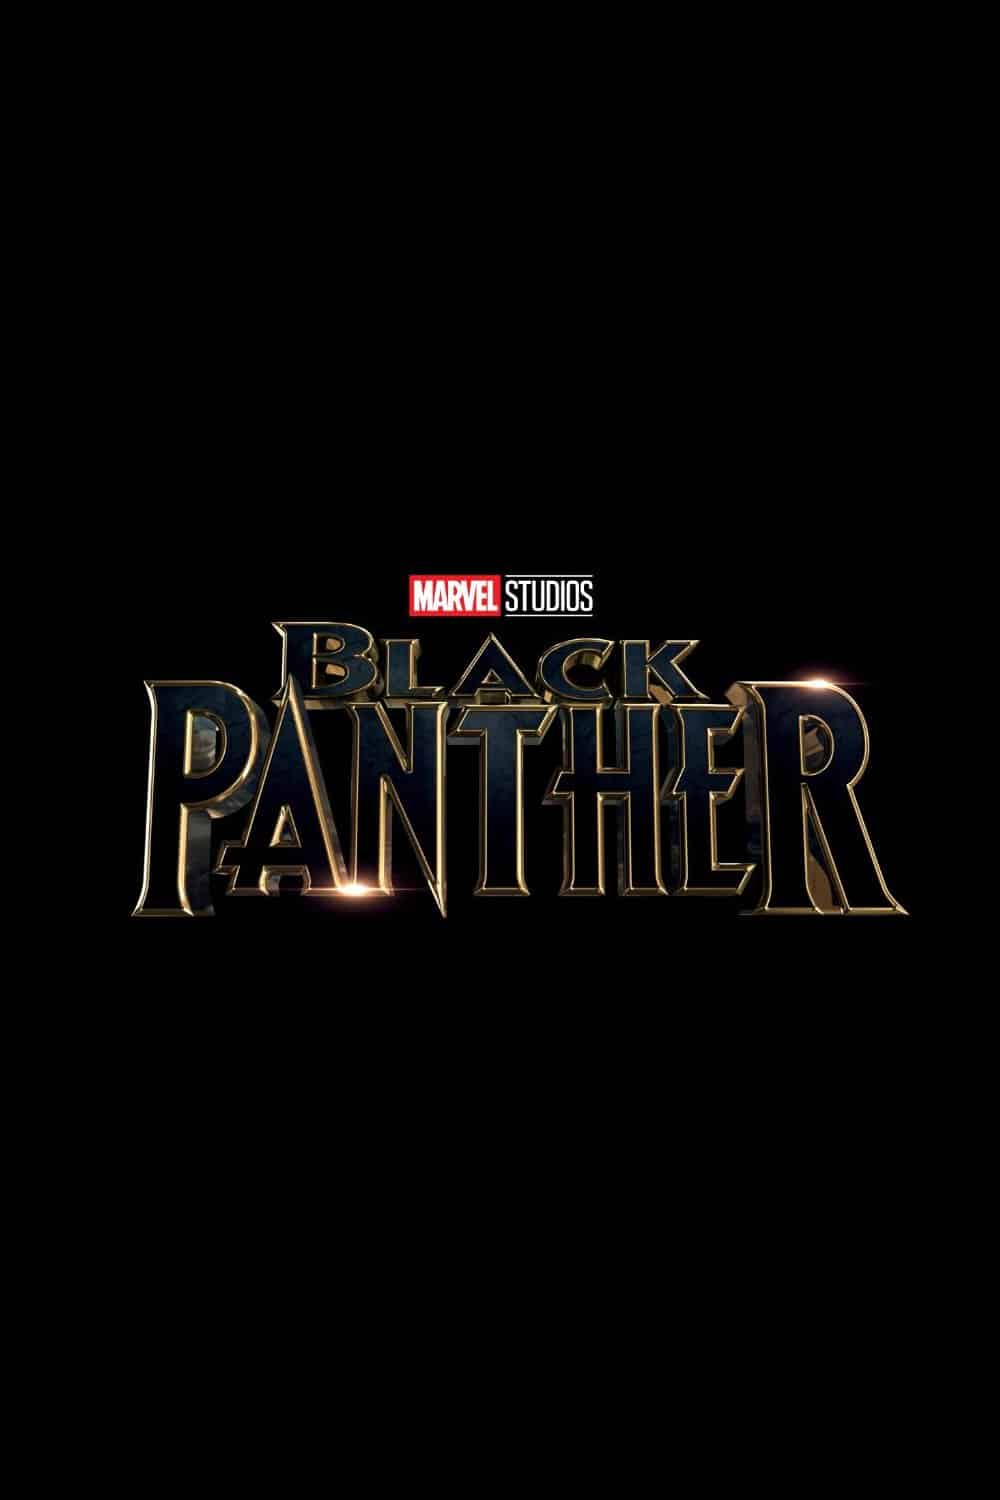 Filtrada La Escena Post Créditos De Black Panther Cinemascomics Com